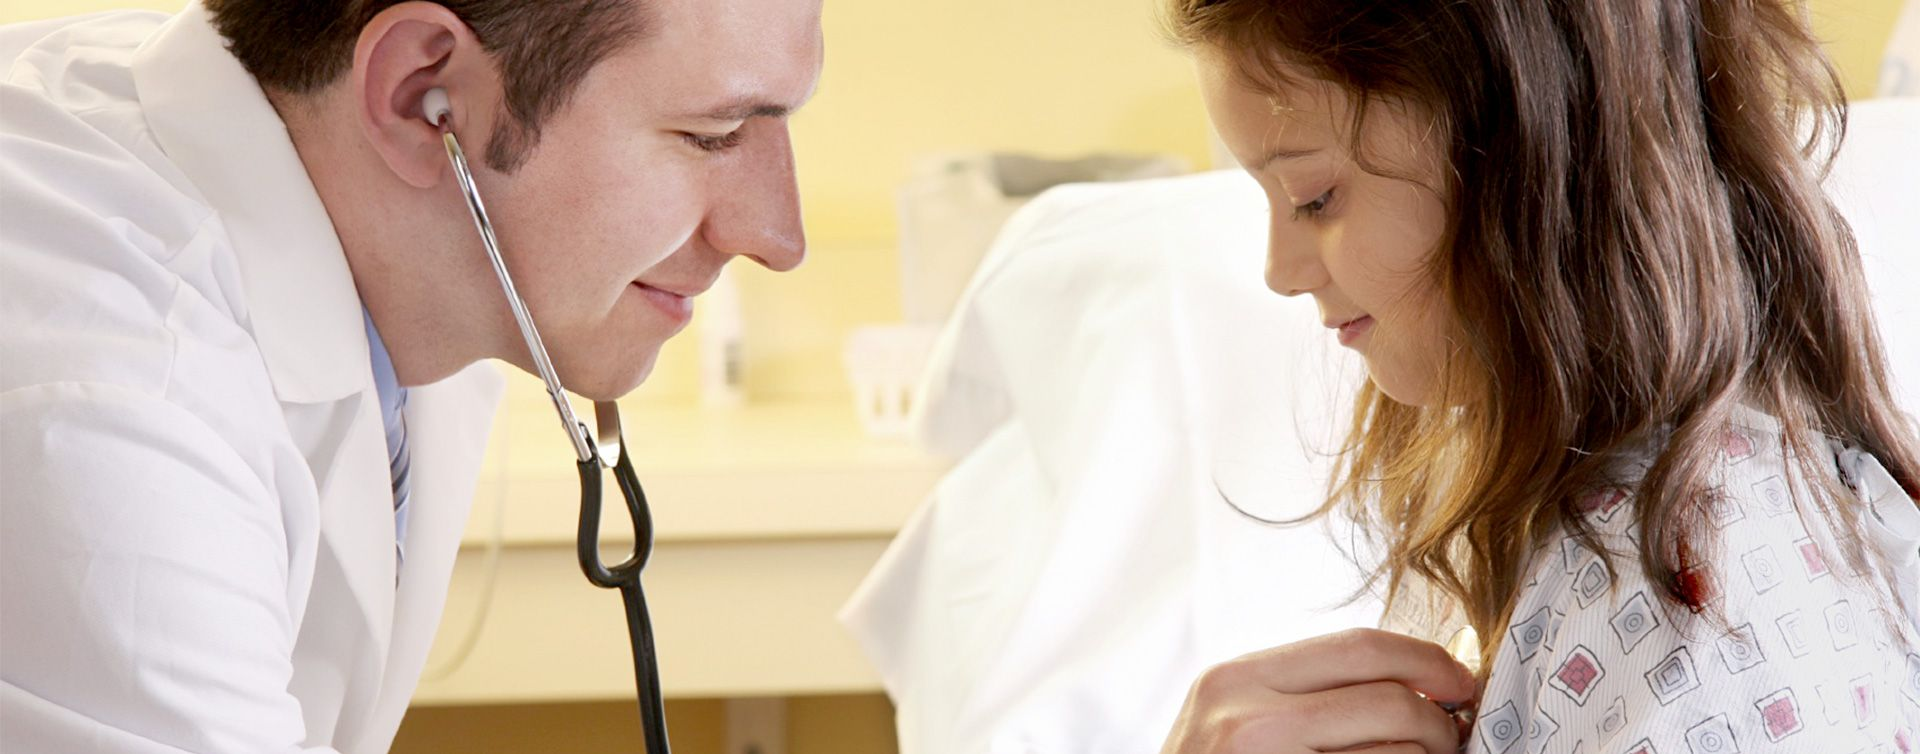 Baby Care Health check, Obstetrics and gynaecology